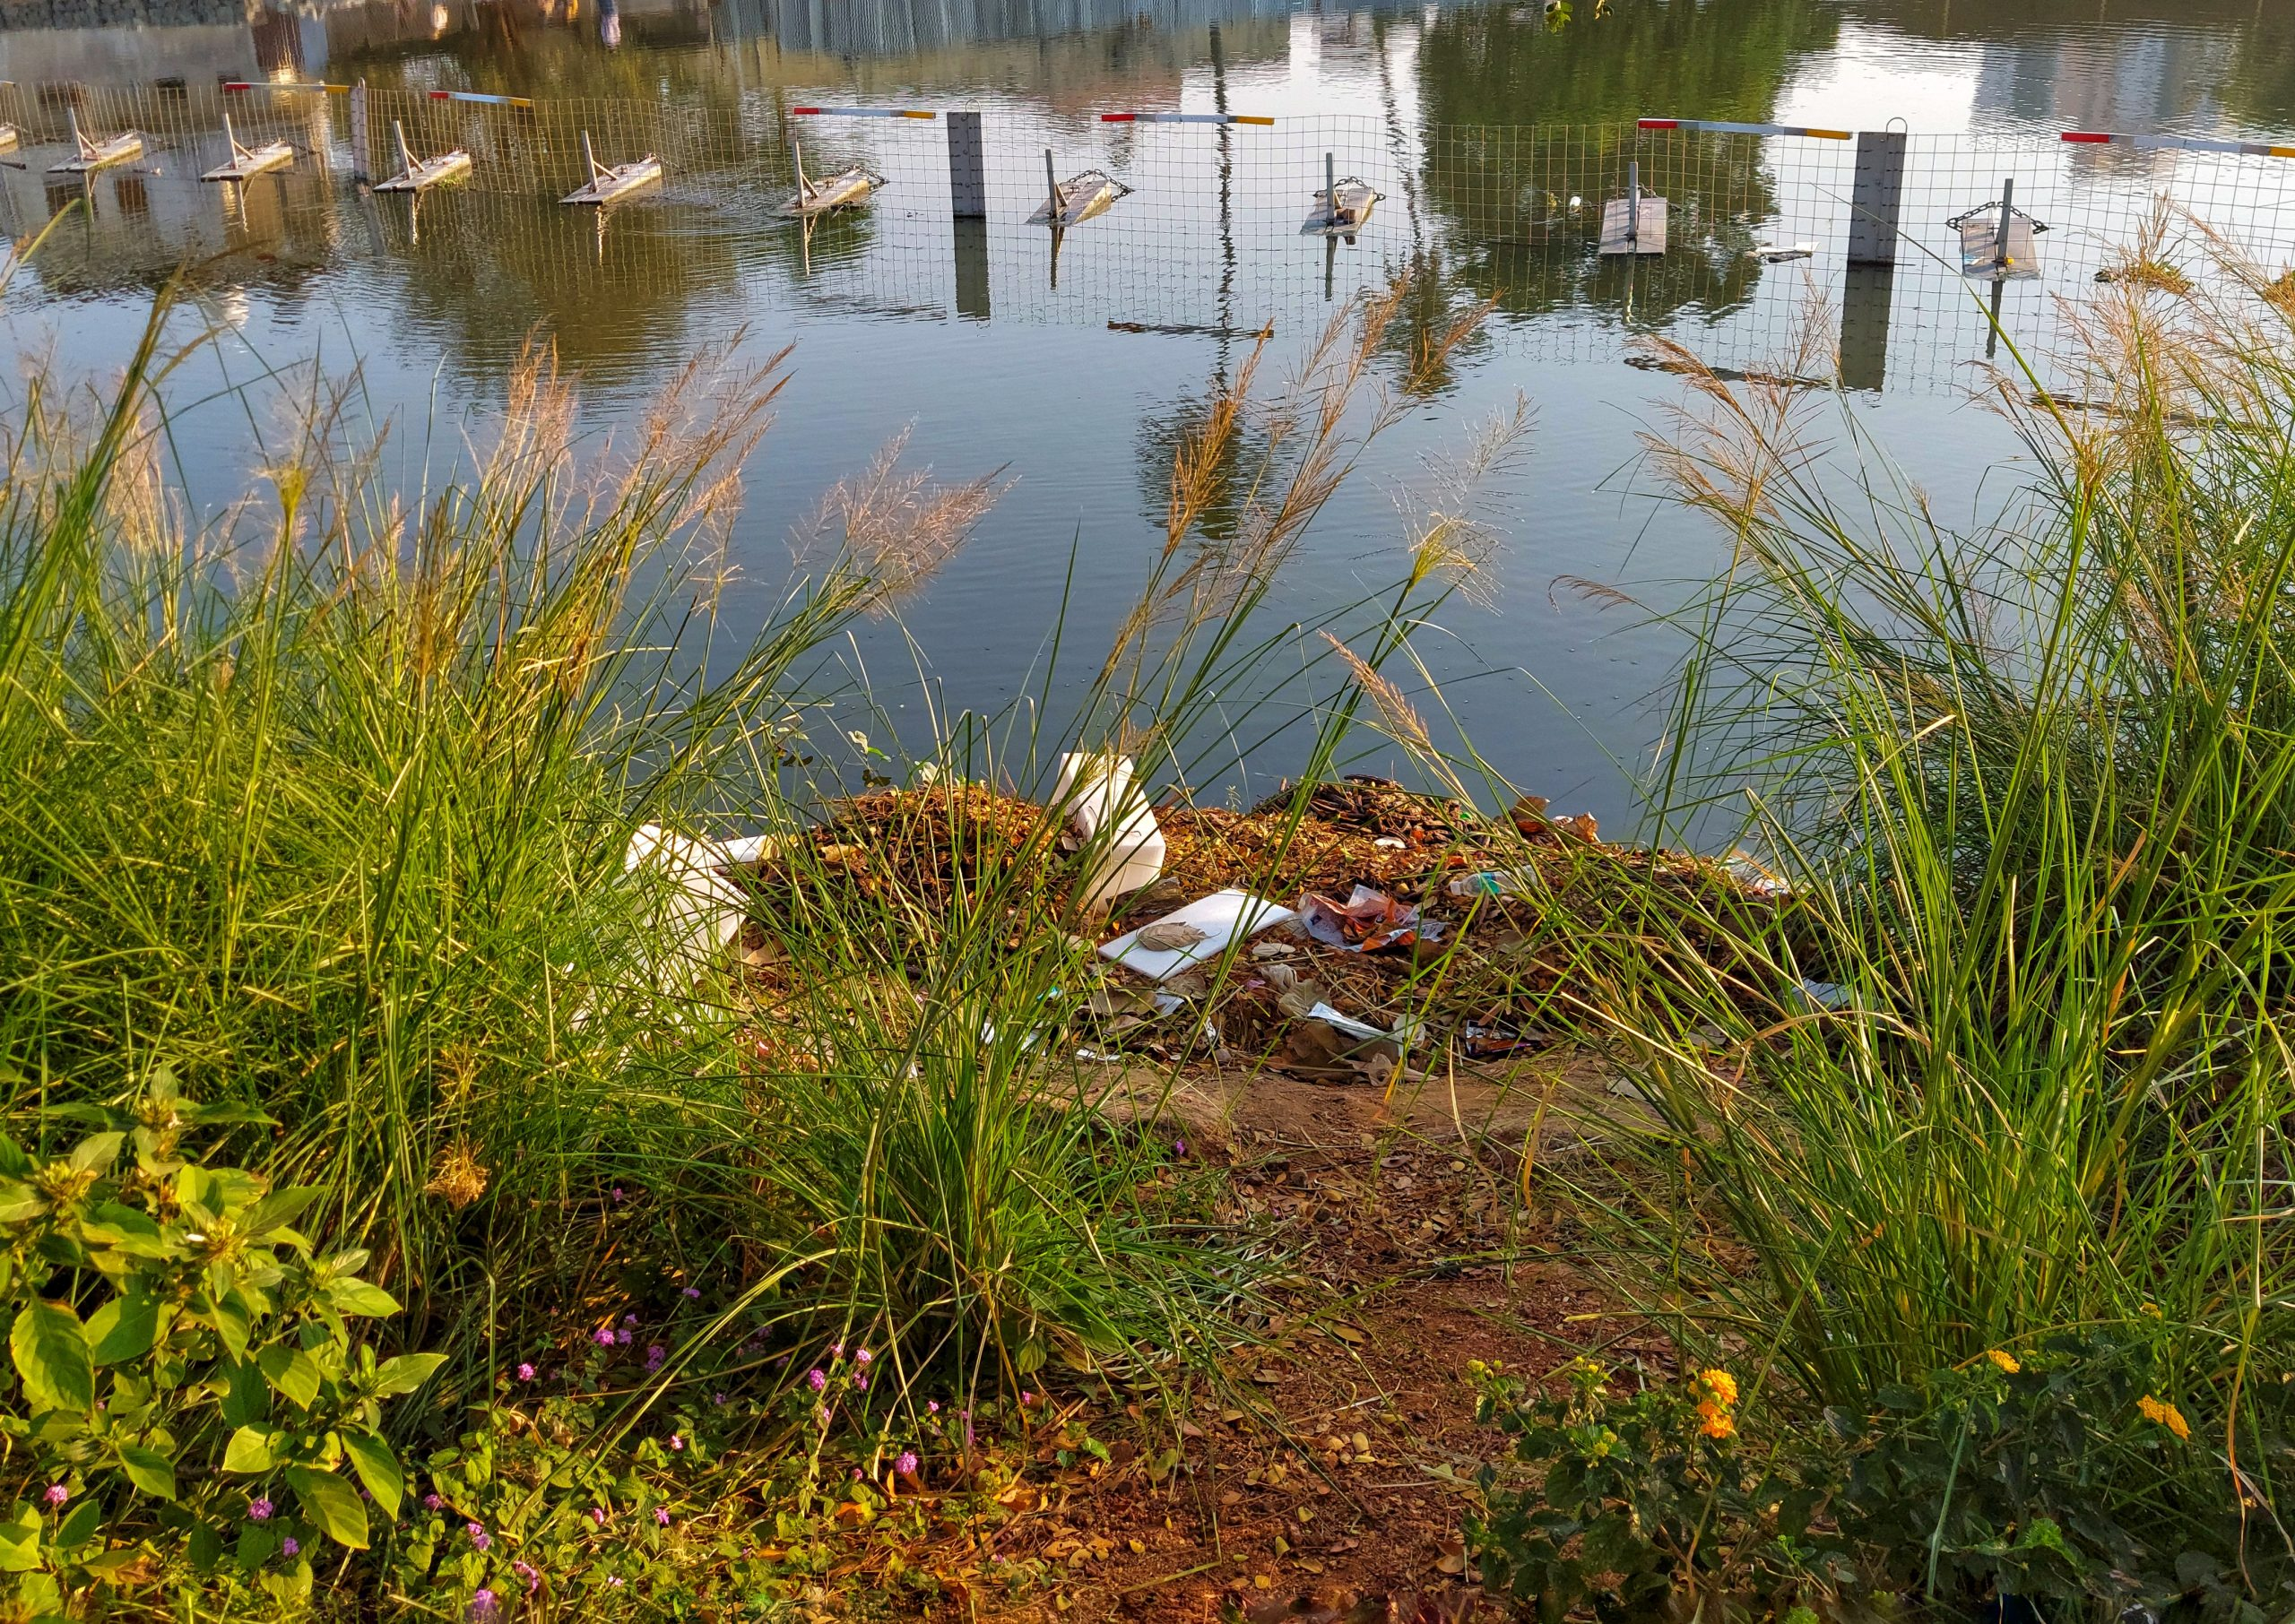 Waste in a lake water